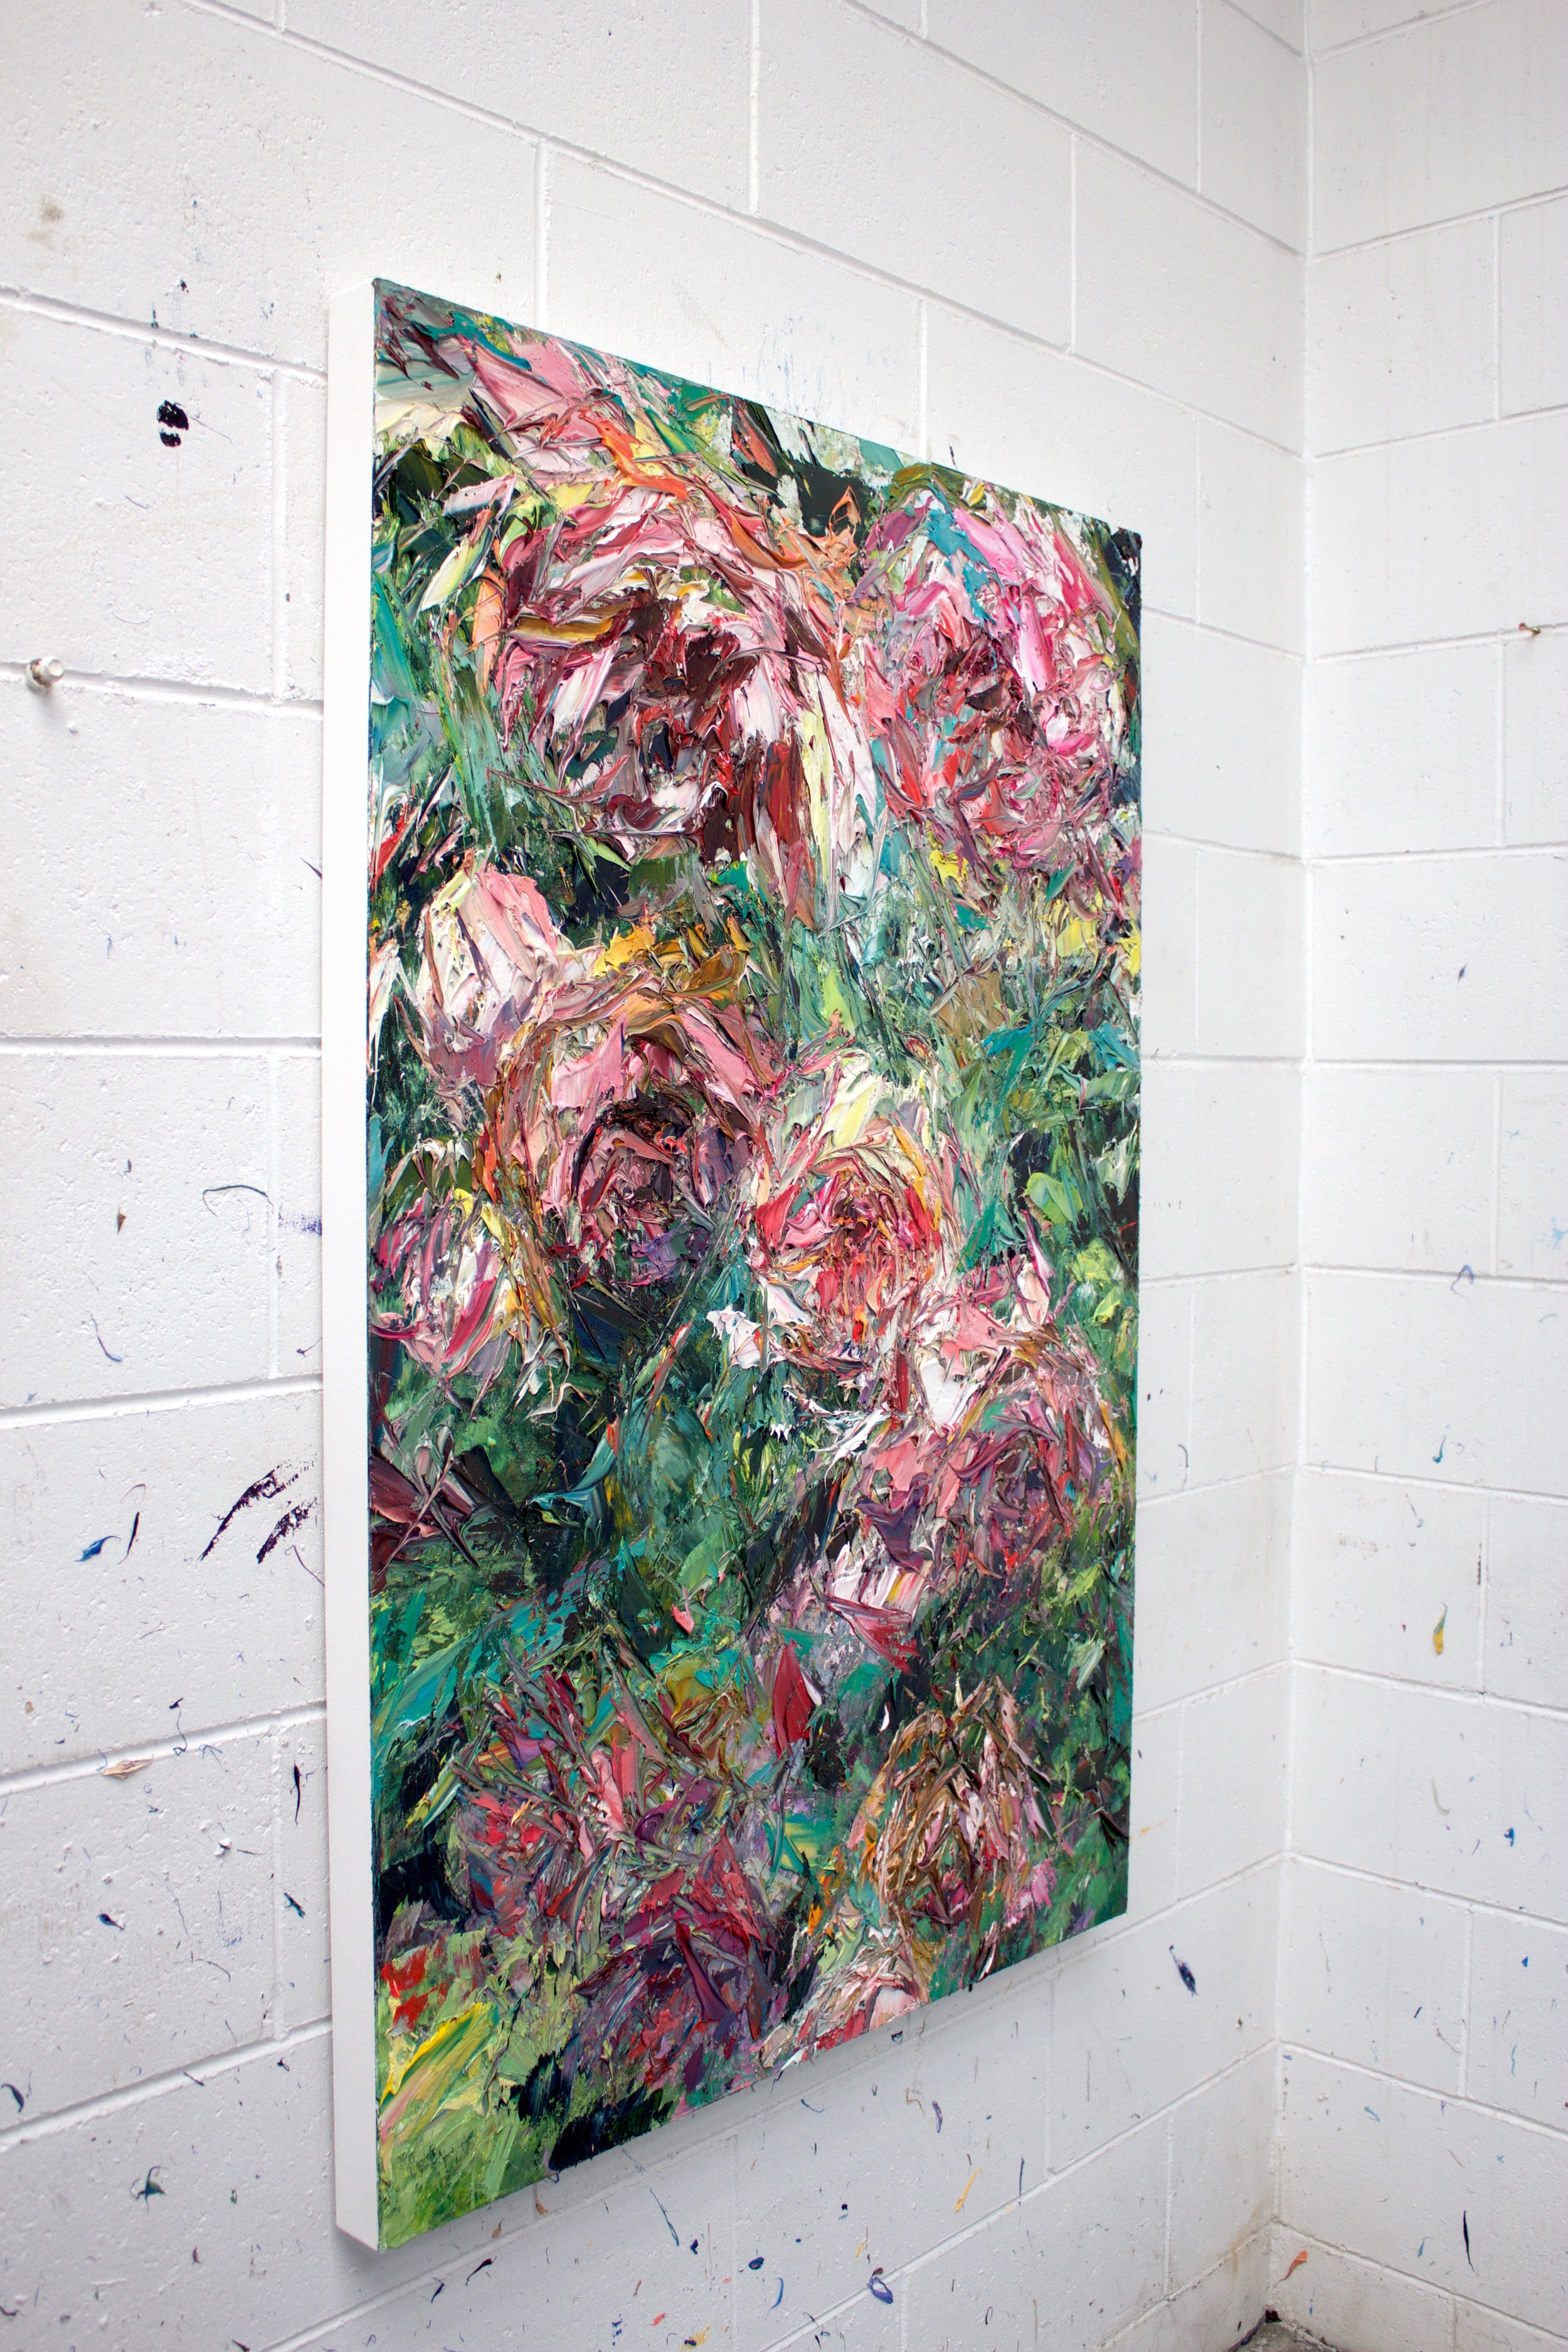 Profile: Cascading Rose